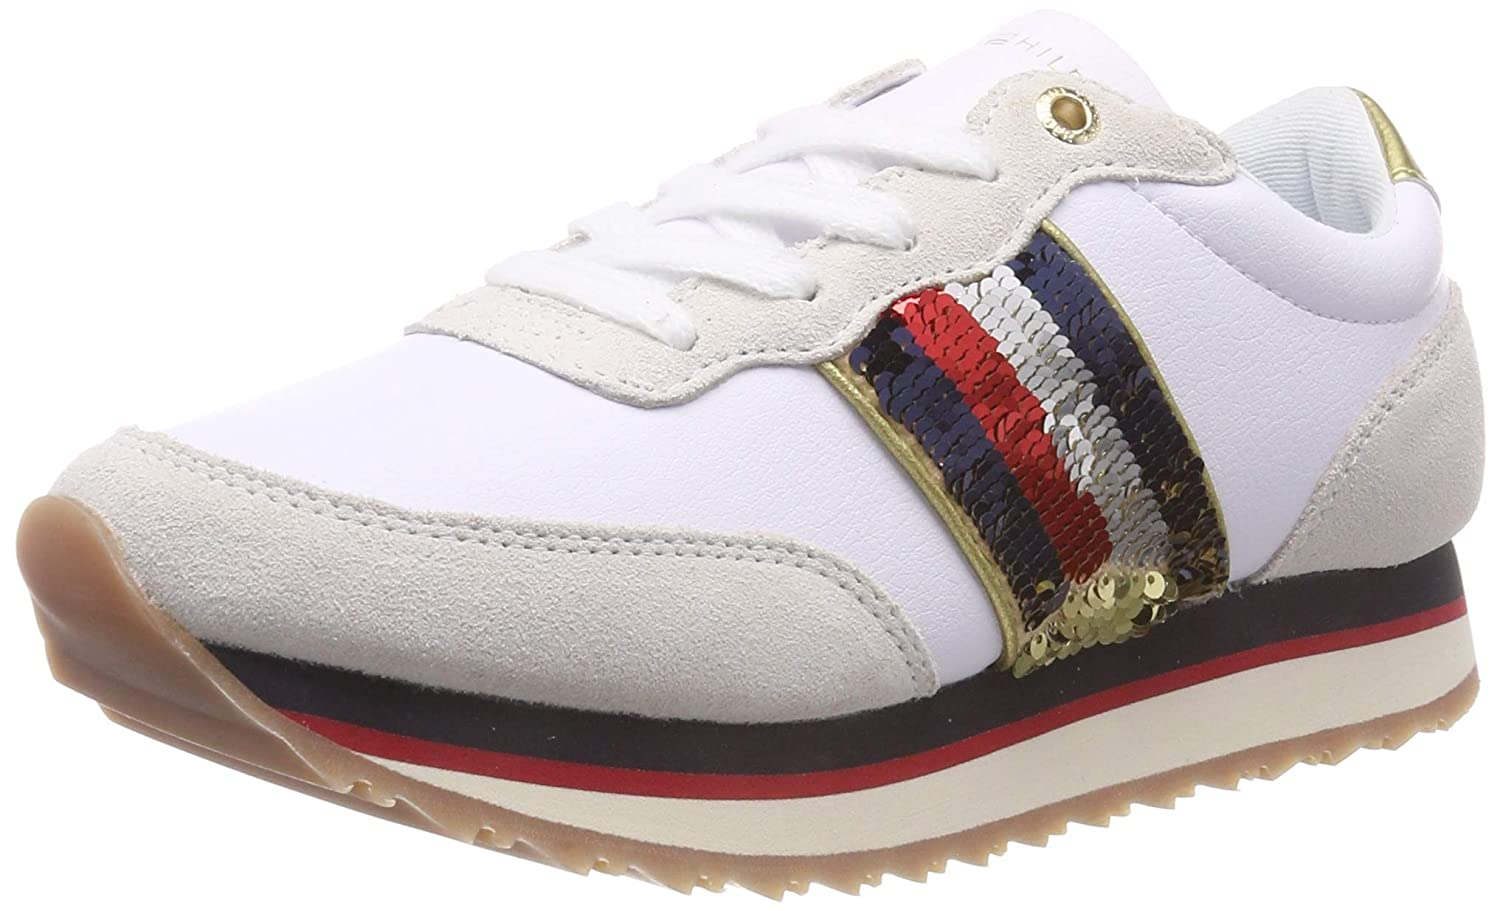 1409950a99 Tommy Hilfiger Tommy Sequins Retro Runner, Sneakers Basses Femme